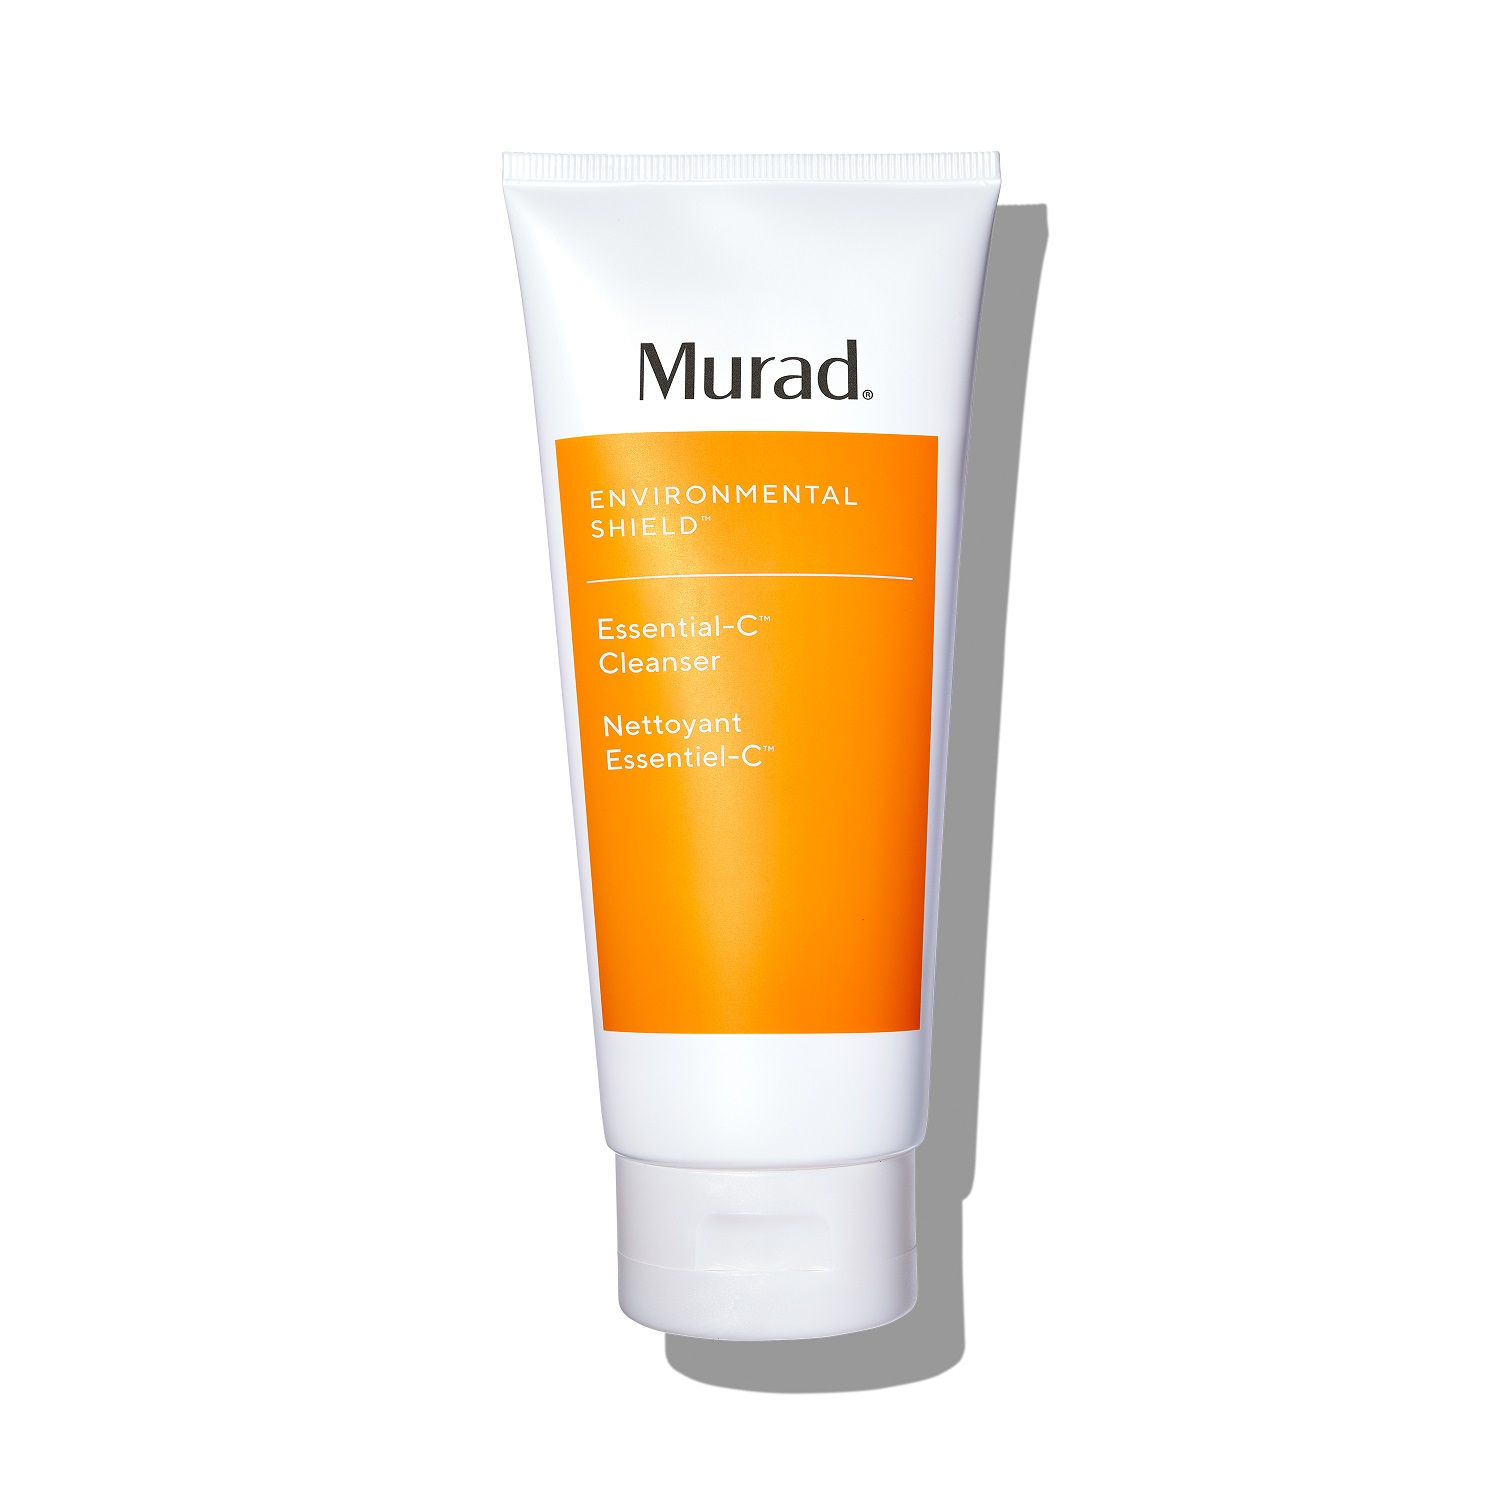 Murad Essential-C Cleanser (ENVIRONMENTAL SHIELD) (6.75 fl oz / 200 ml)